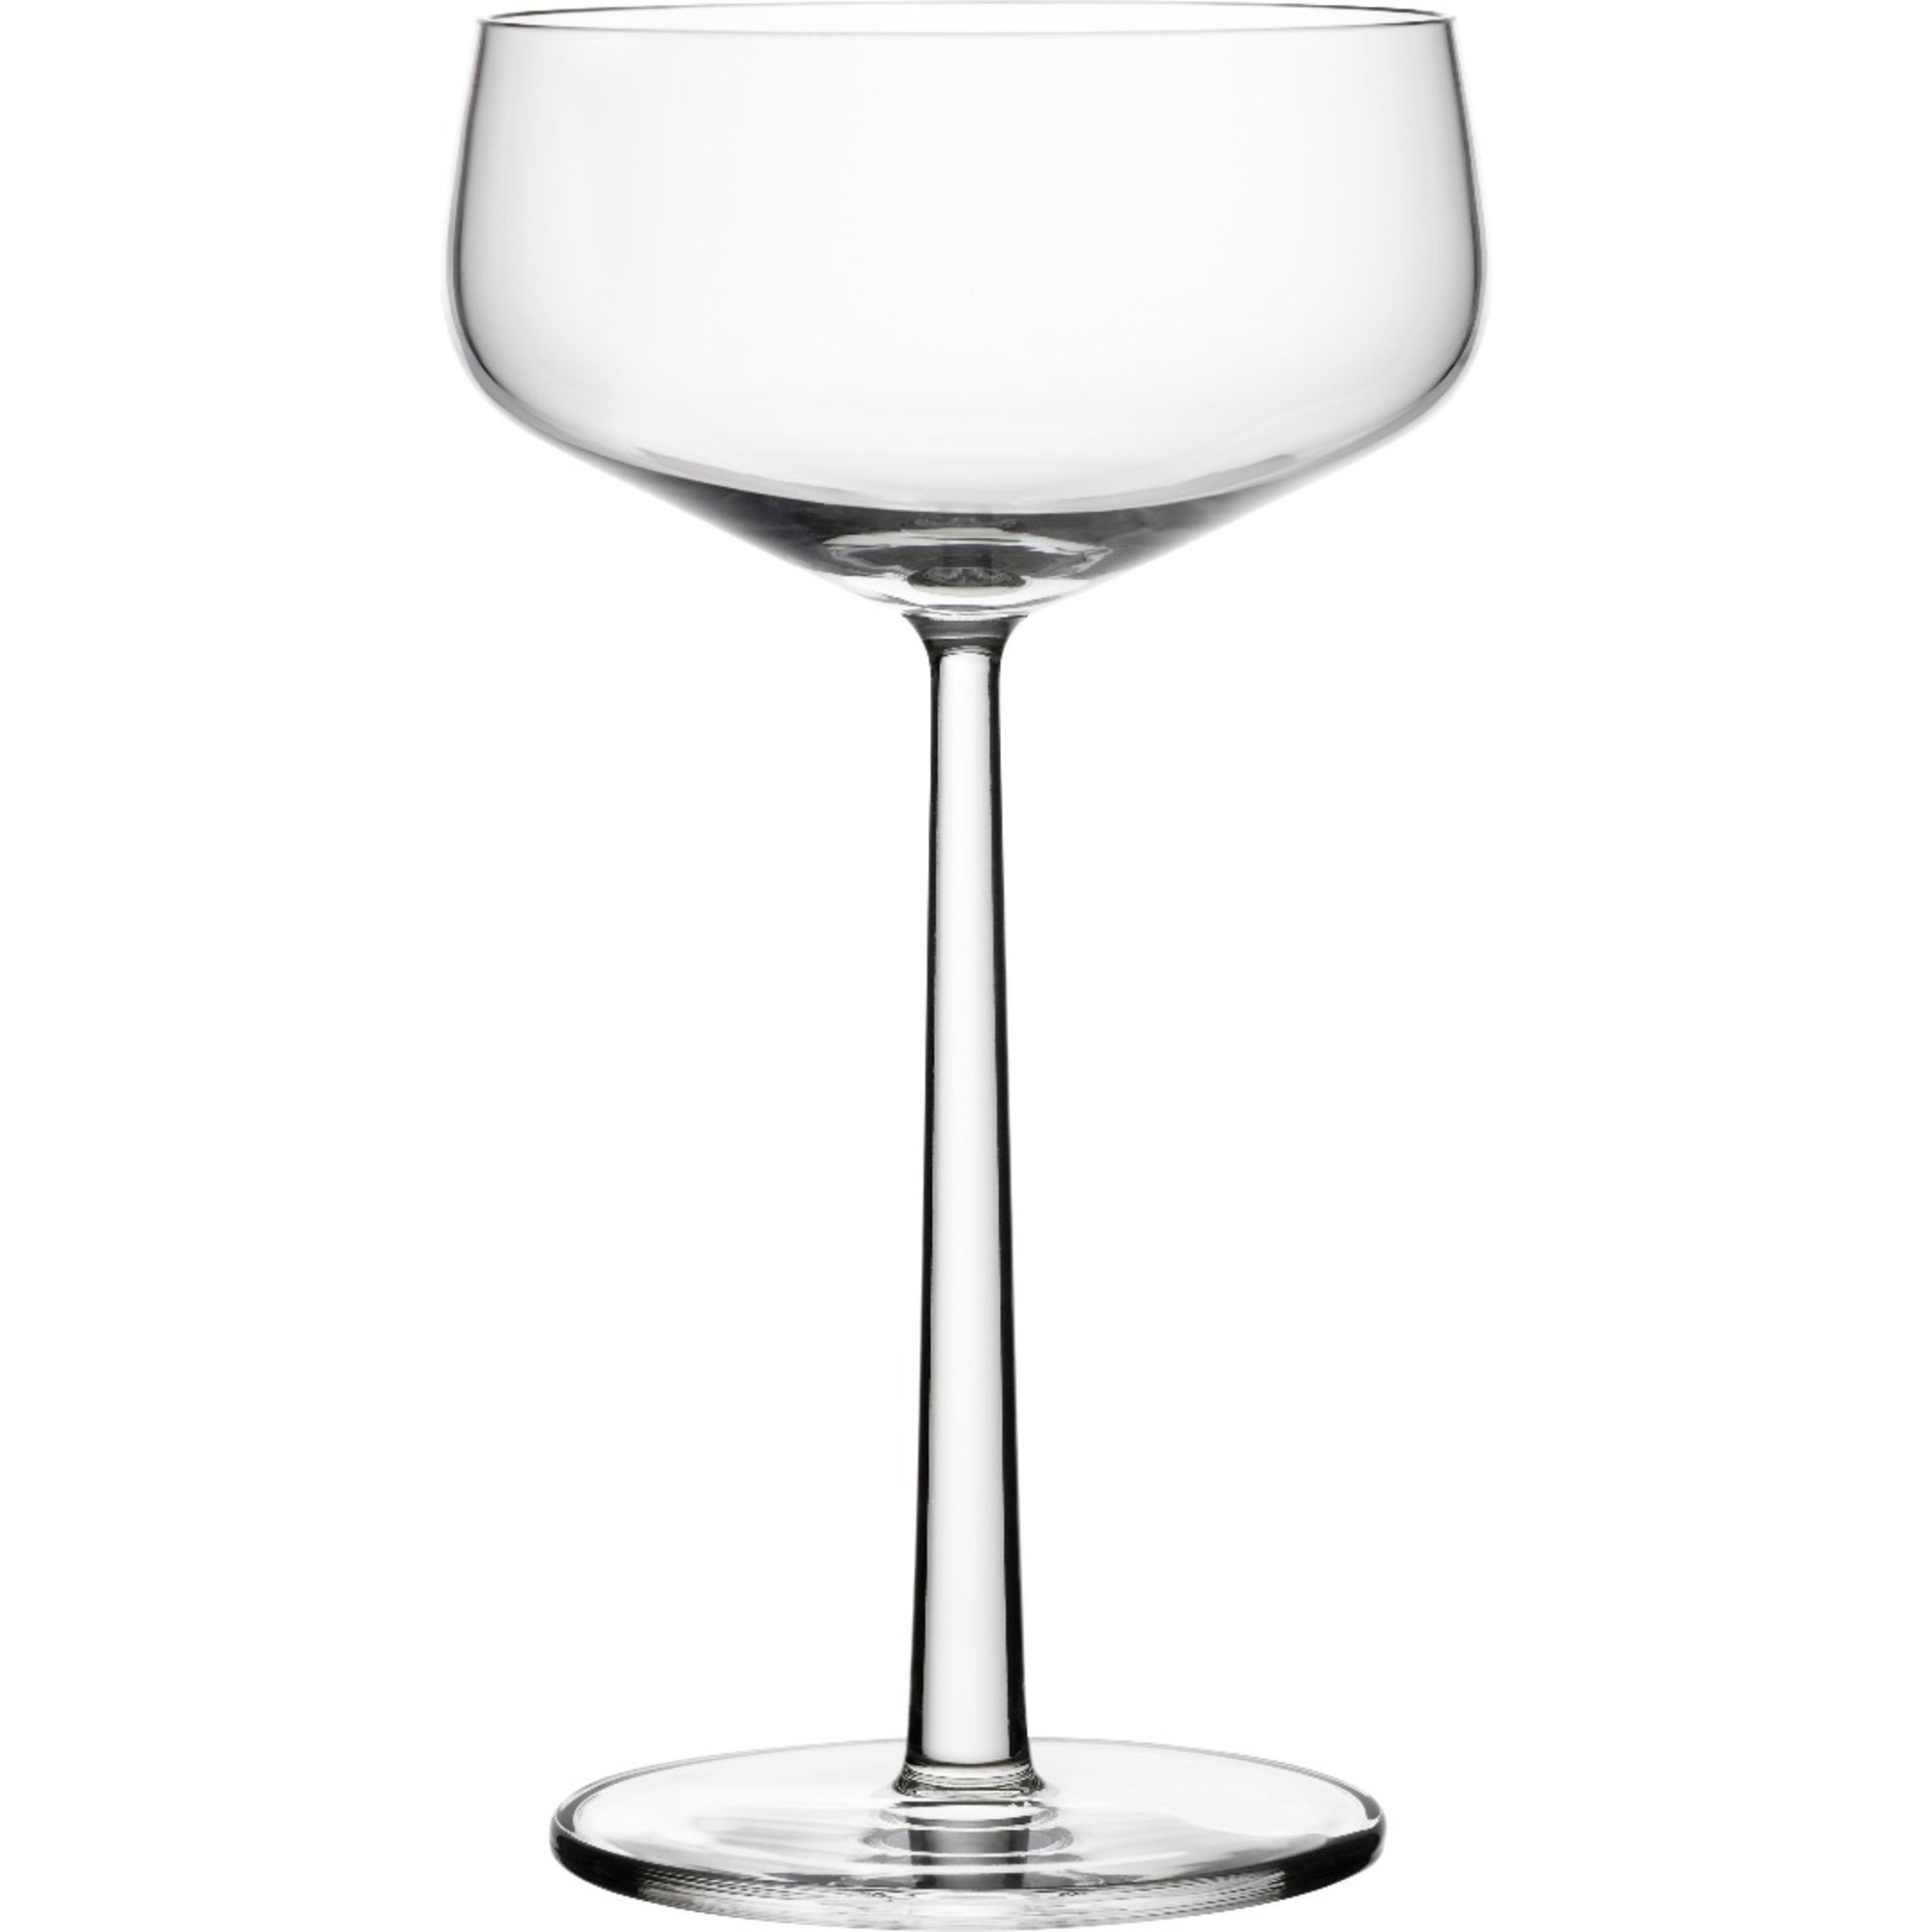 Iittala Essence Cocktail/Dessertskål 31 cl 2-pack